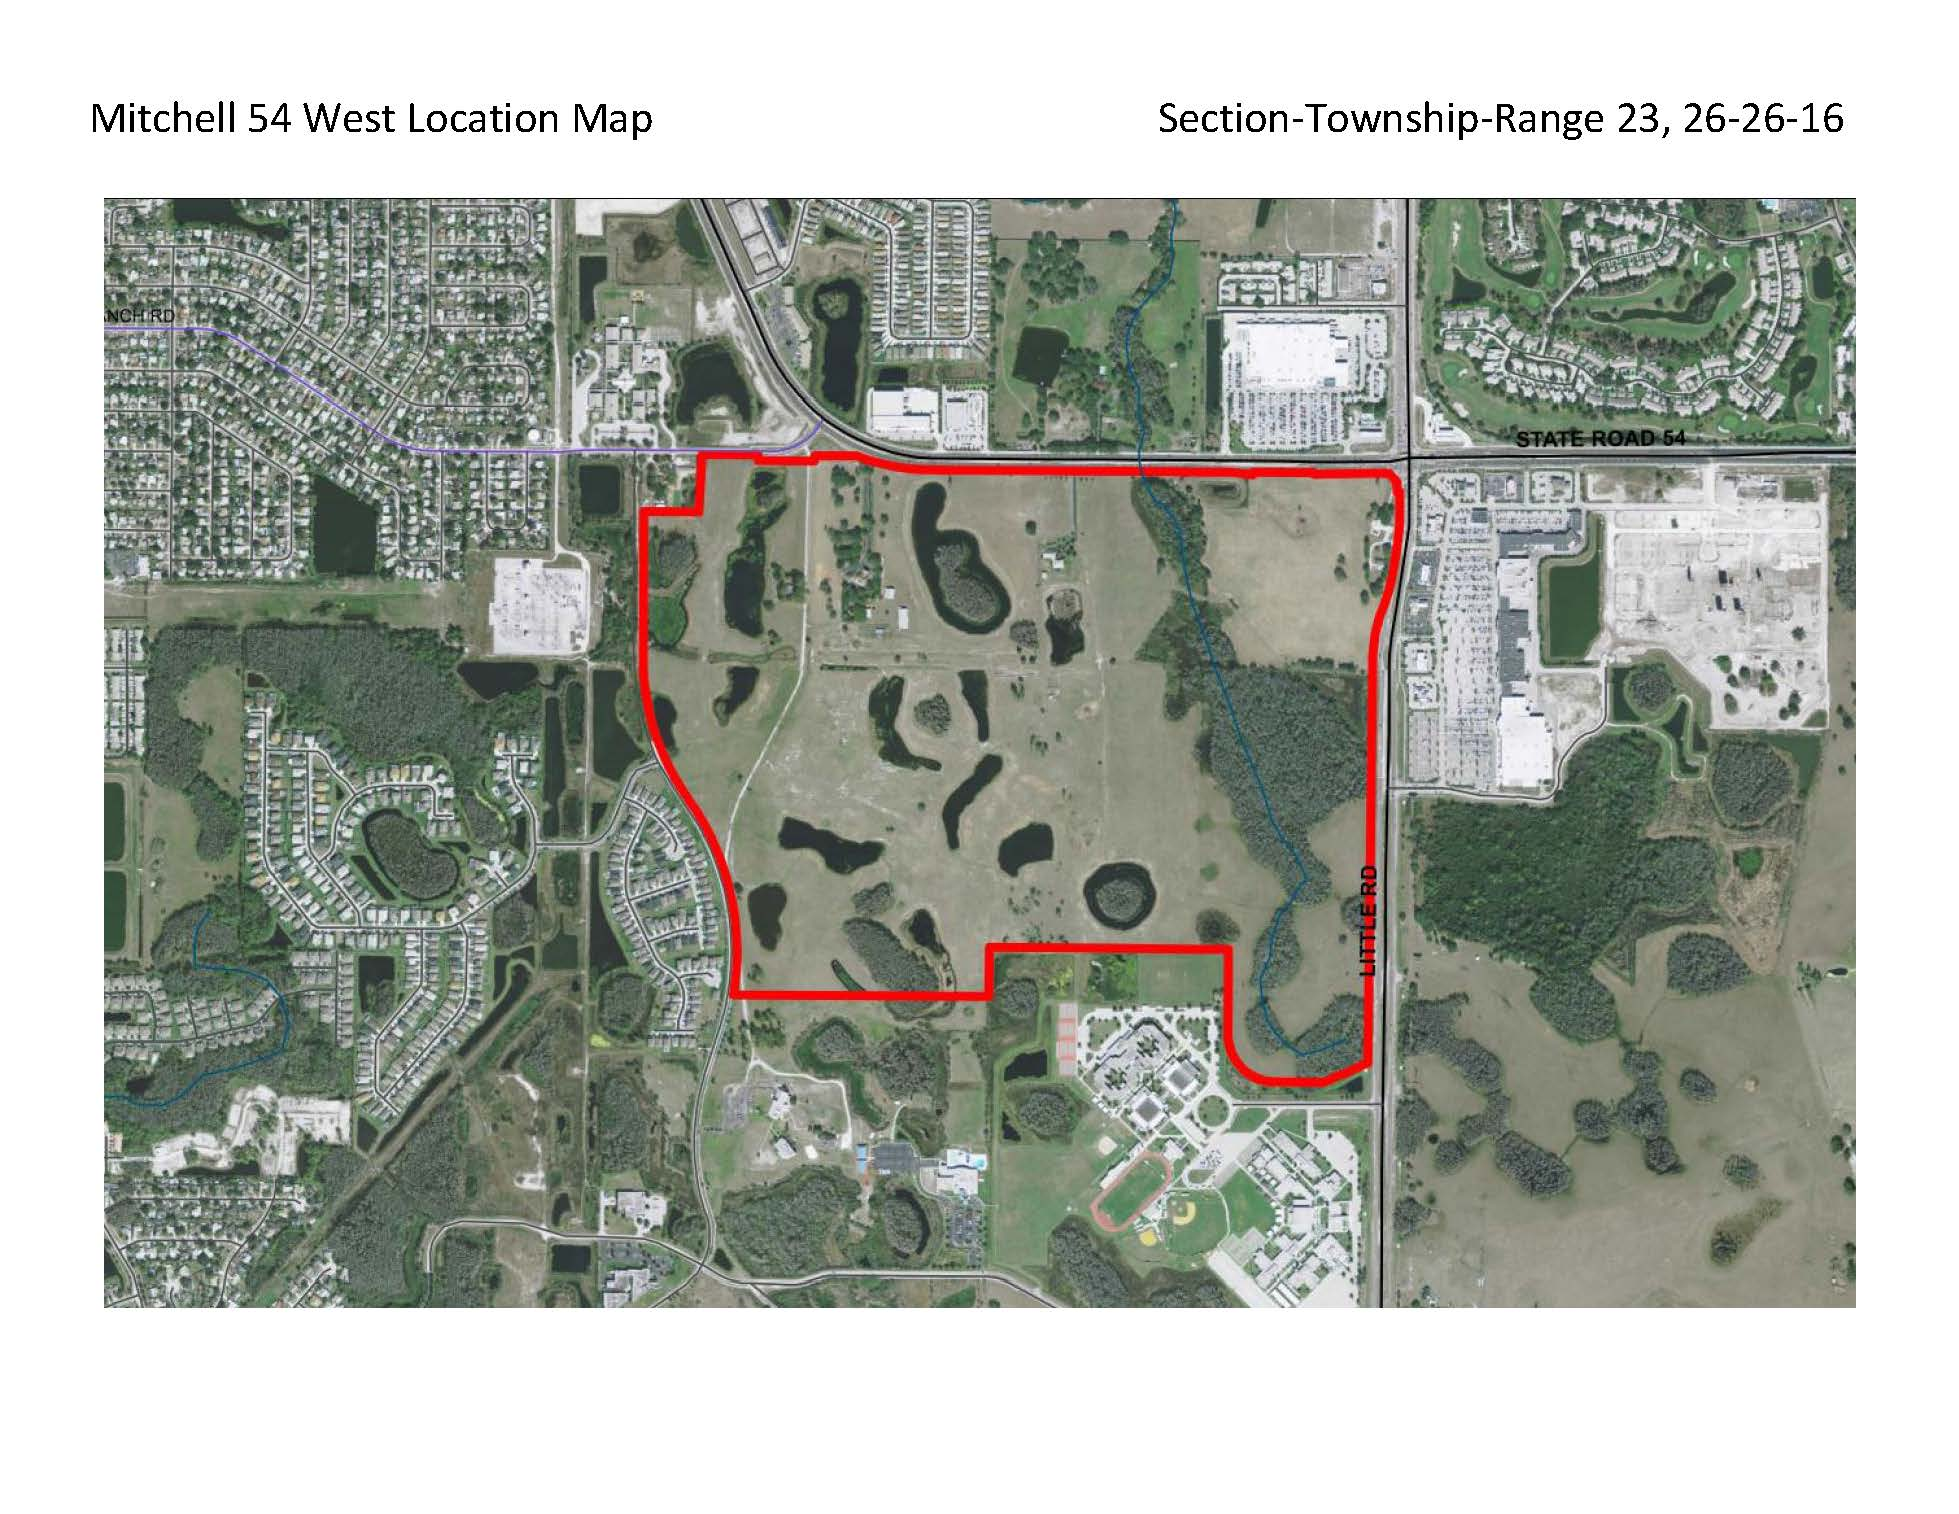 Mitchell 54 West Location Map